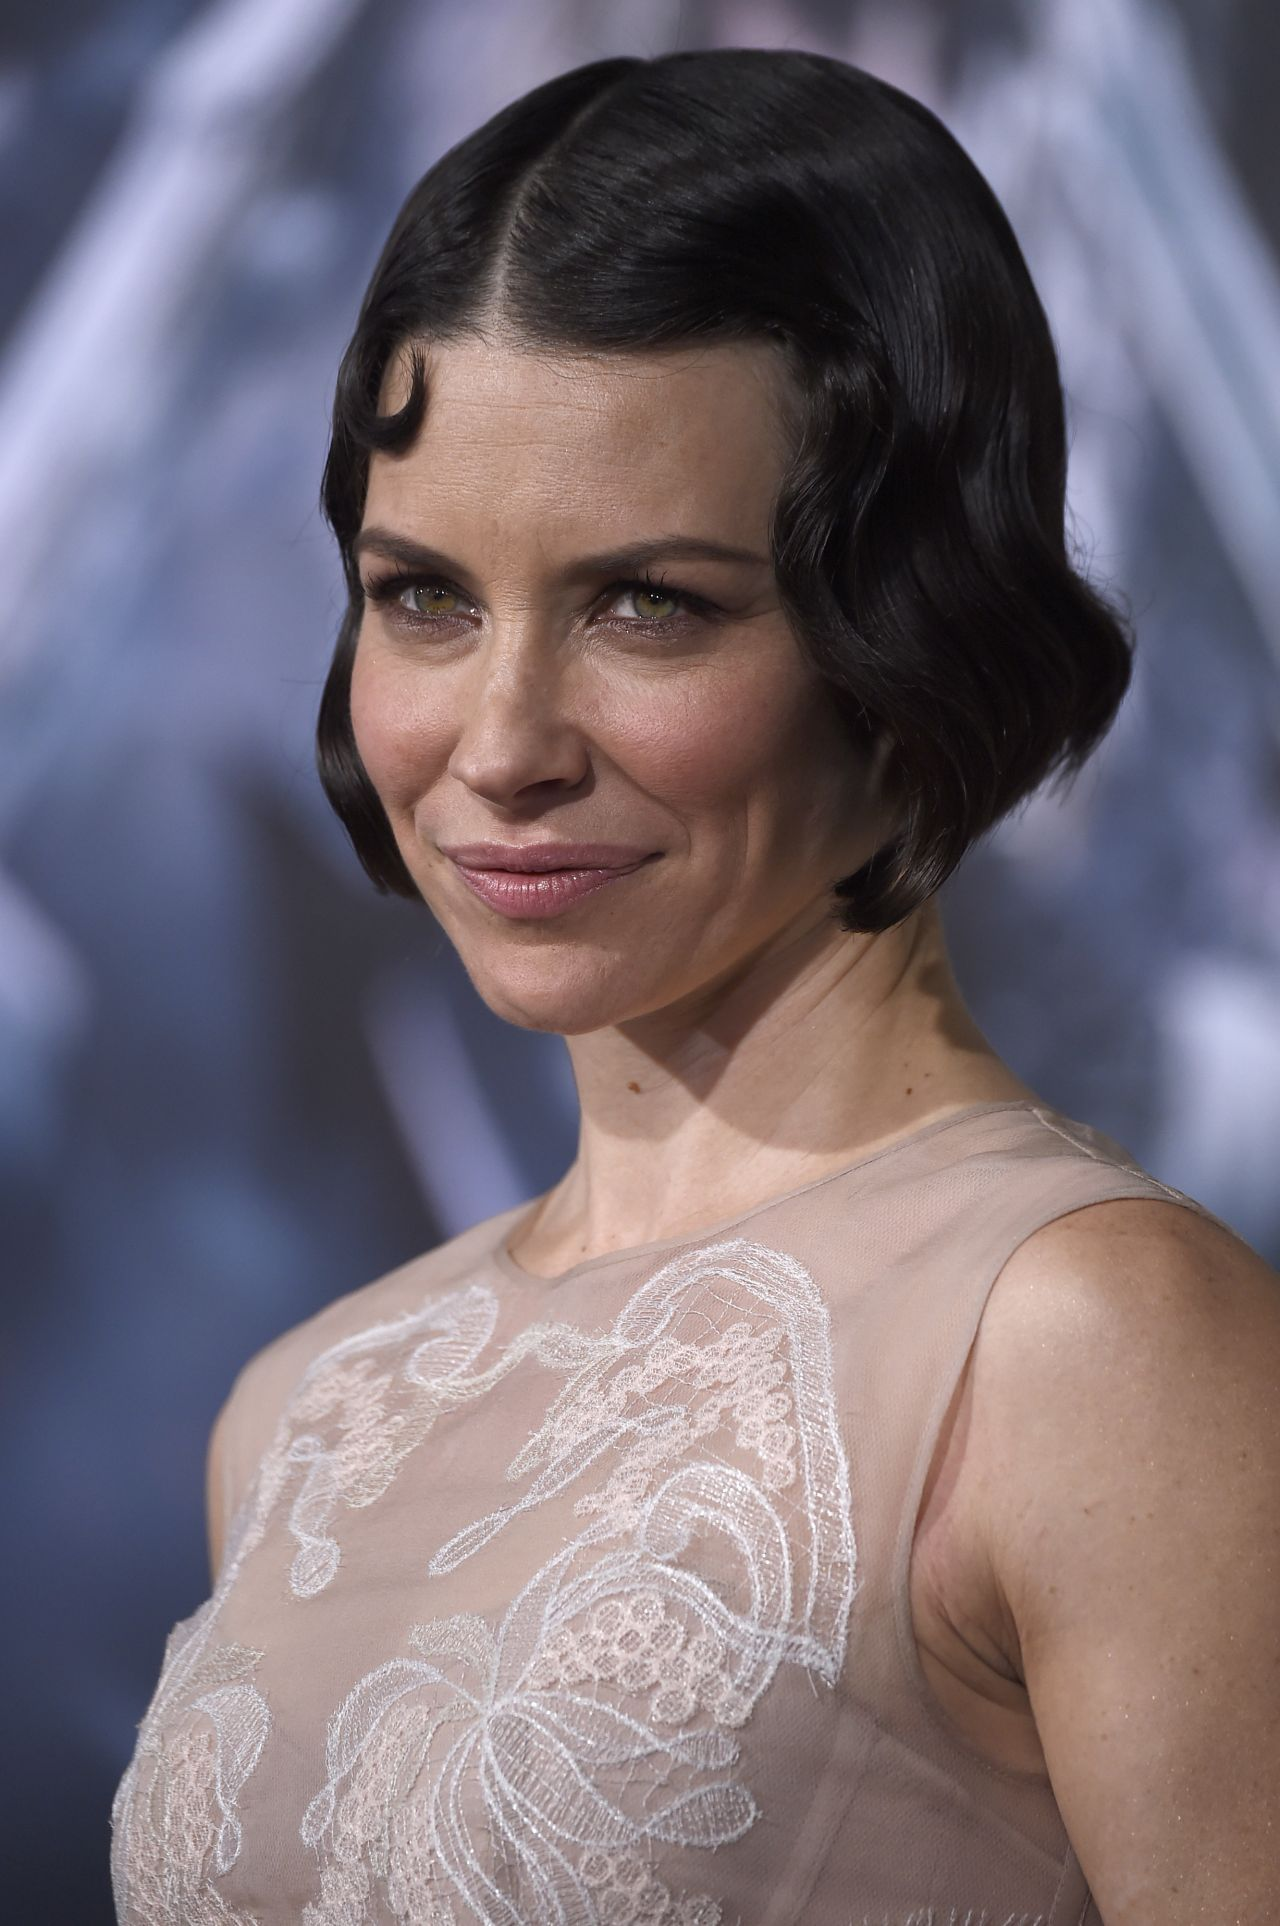 Evangeline Lilly The Hobbit The Battle Of The Five